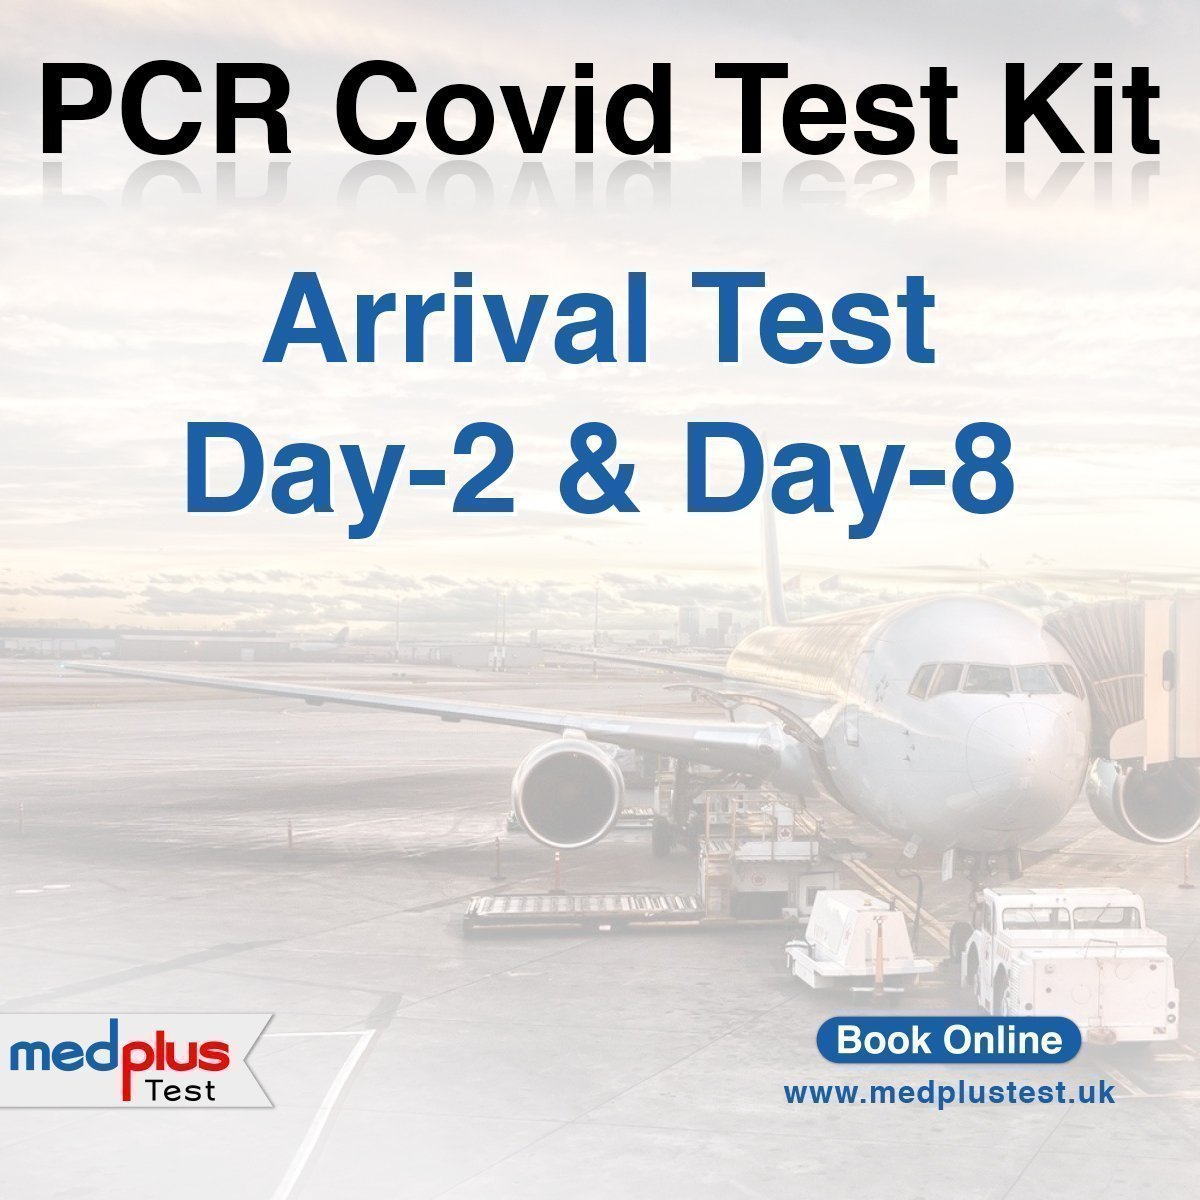 day-2 and 8 covid-19 tests for international travelers